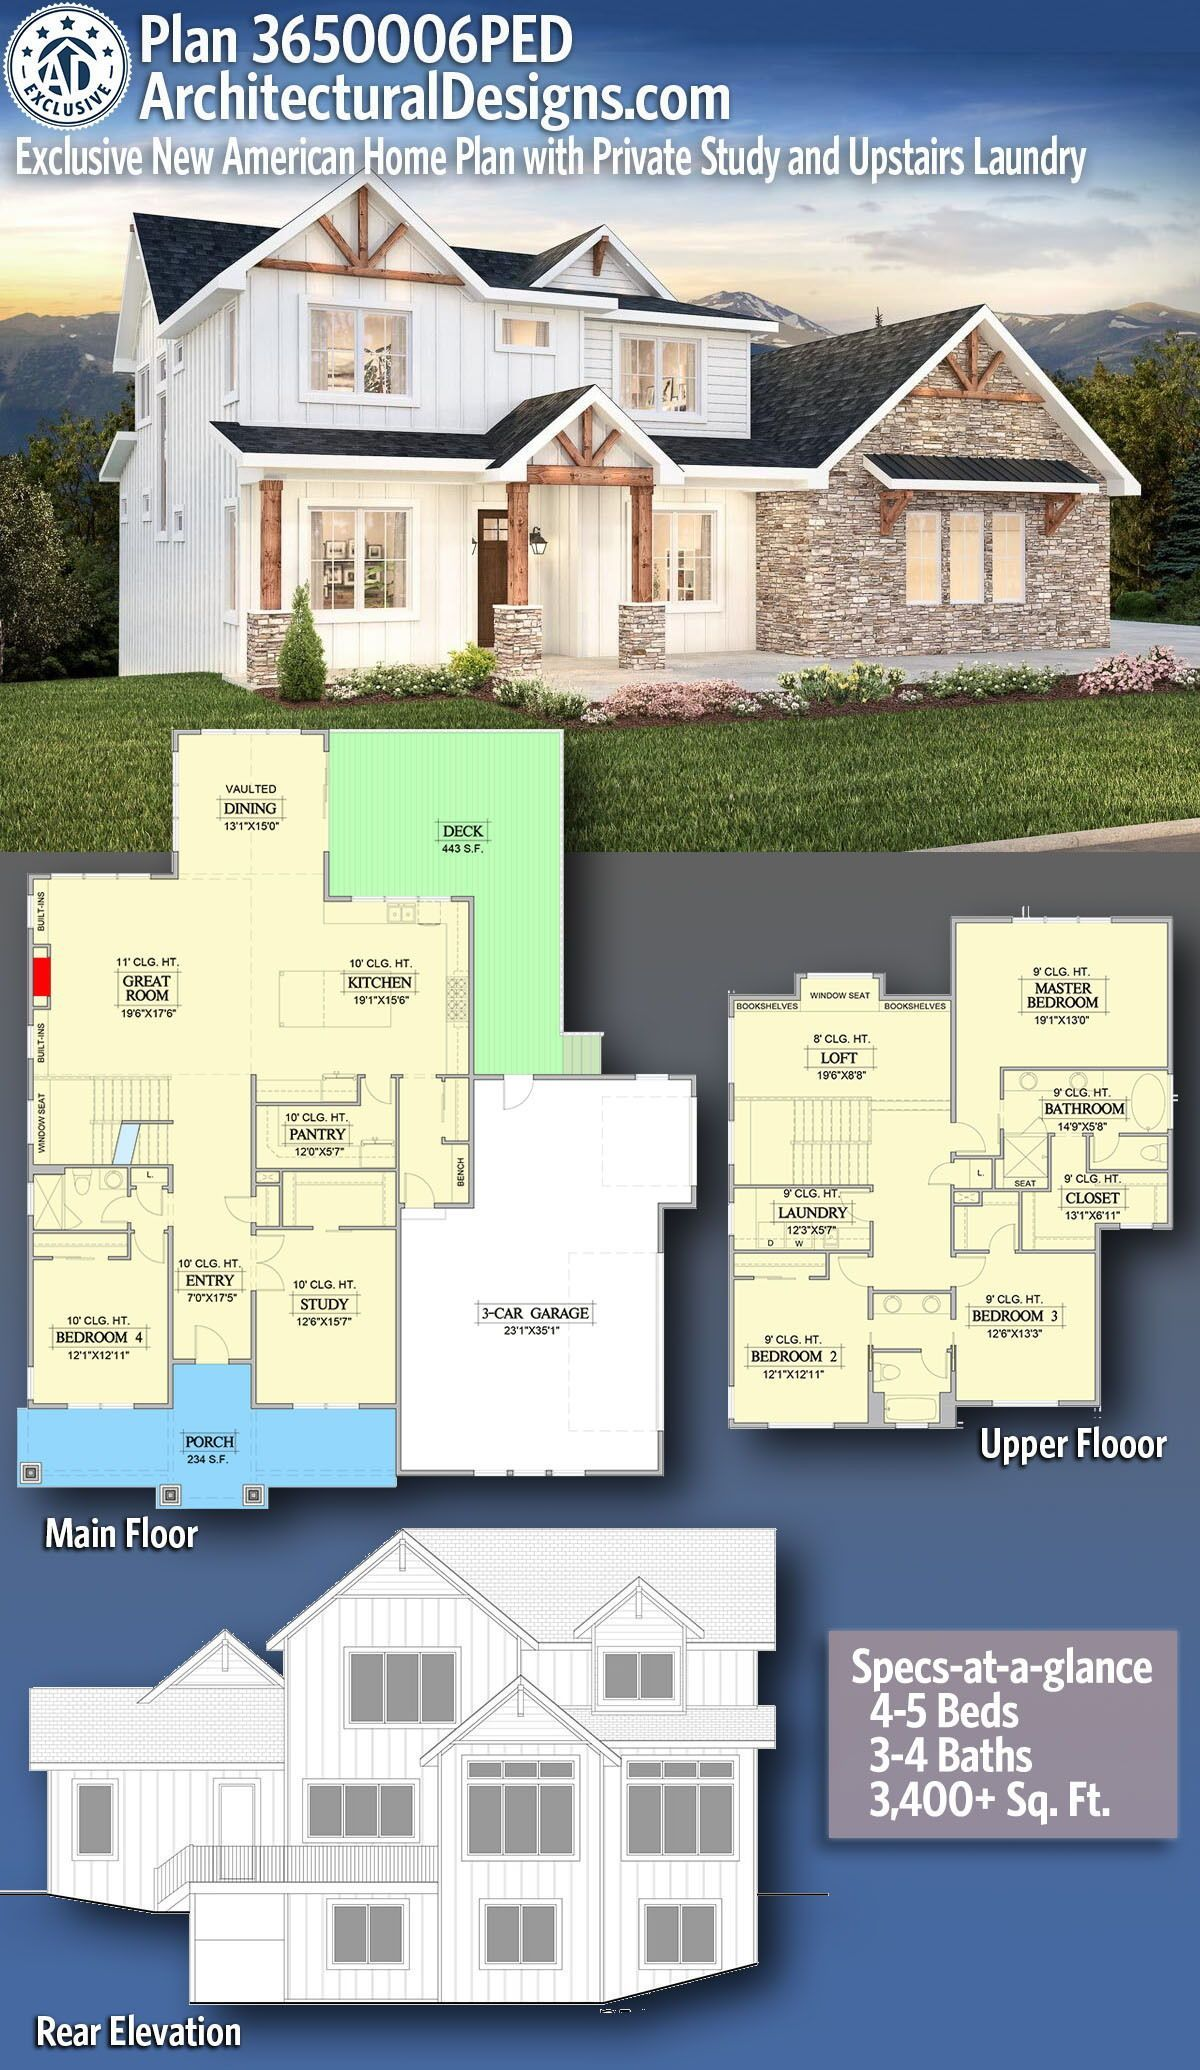 Plan PED Exclusive New American Home Plan with Private Study and Upstairs Laundry